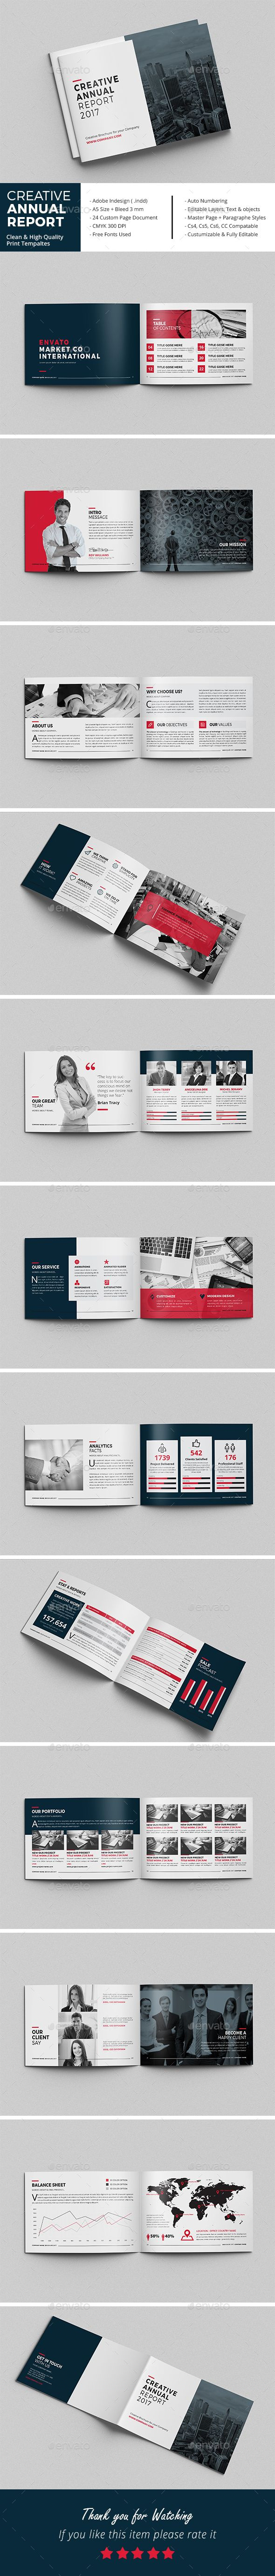 Creative Annual Report Brochure - #Corporate #Brochures Download here:  https://graphicriver.net/item/creative-annual-report-brochure/19530251?ref=alena994